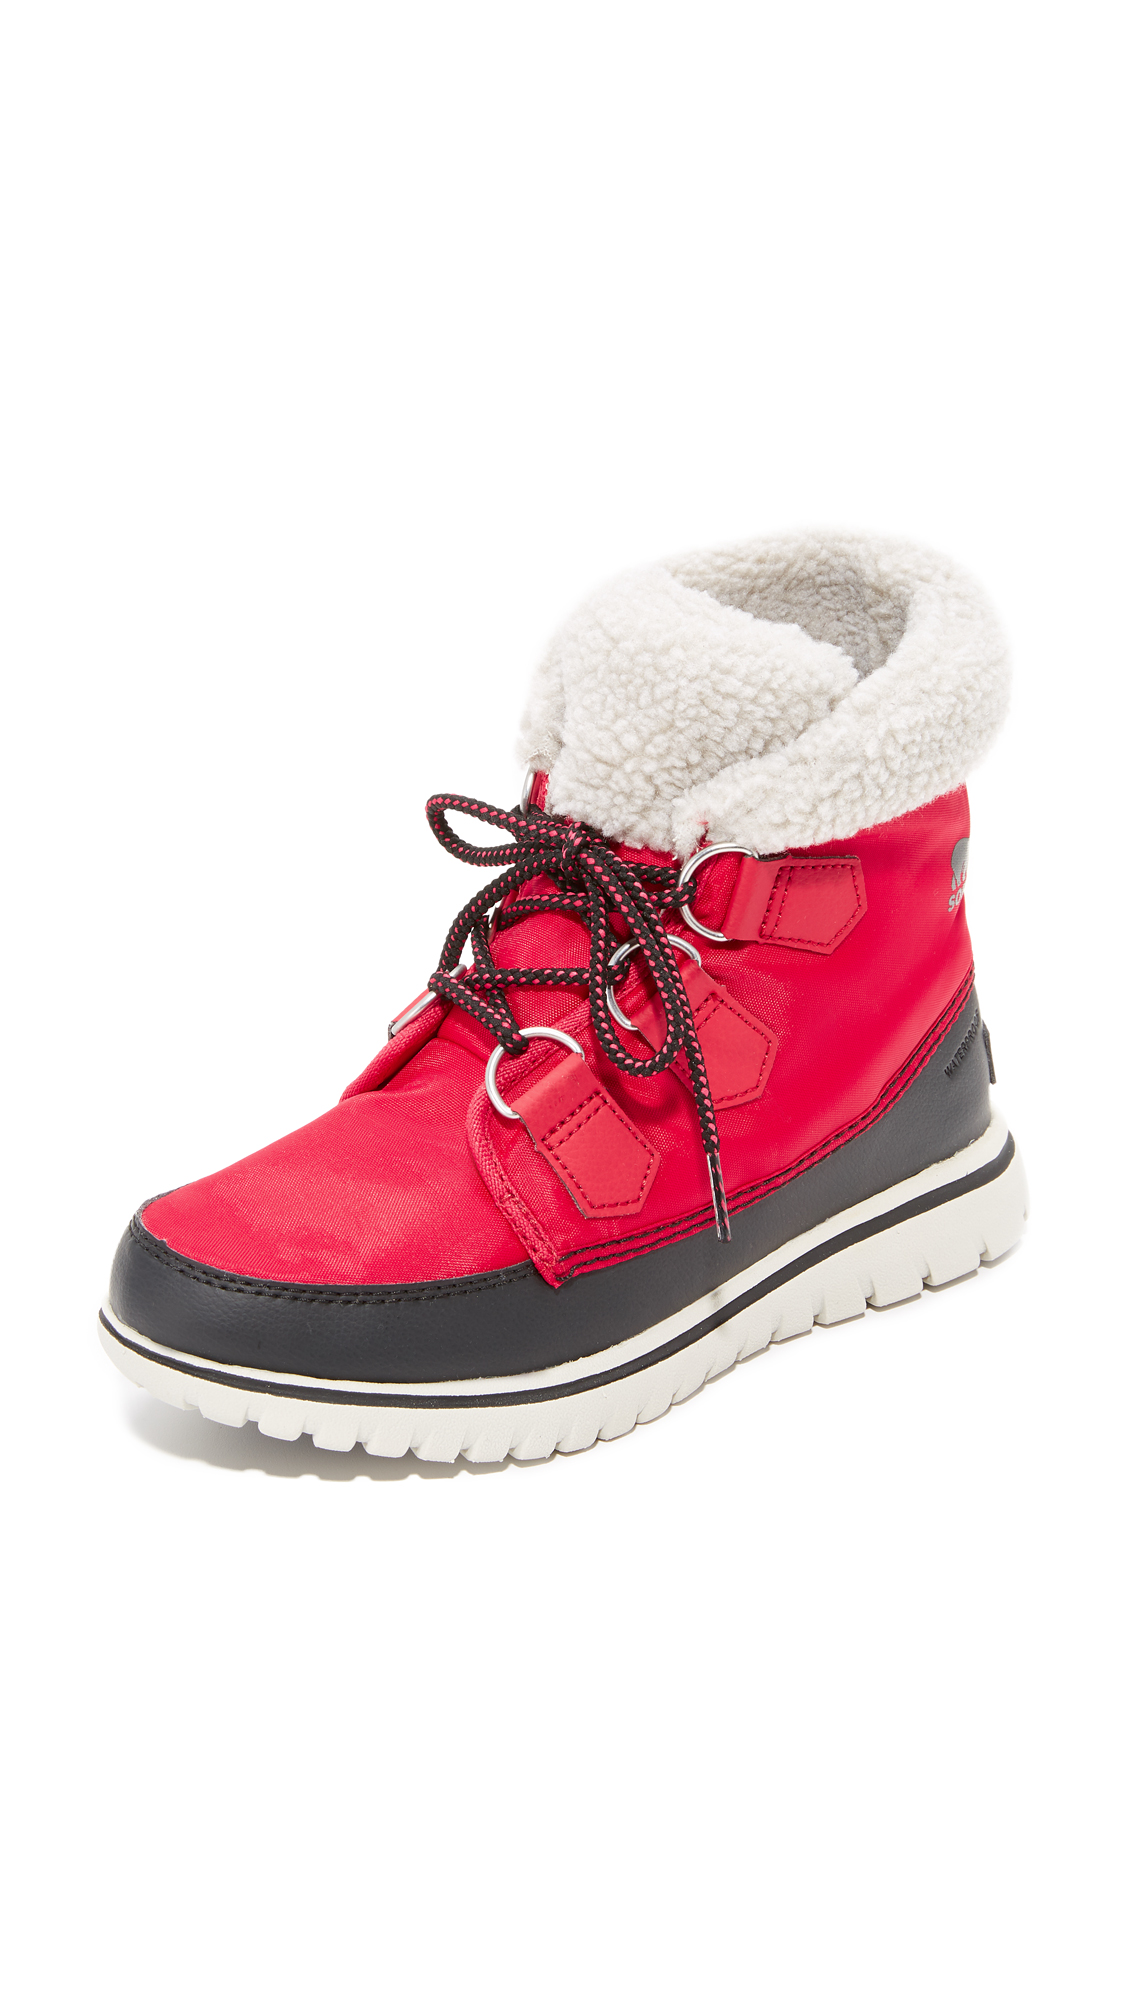 Sorel Cozy Carnival Booties - Candy Apple/Black